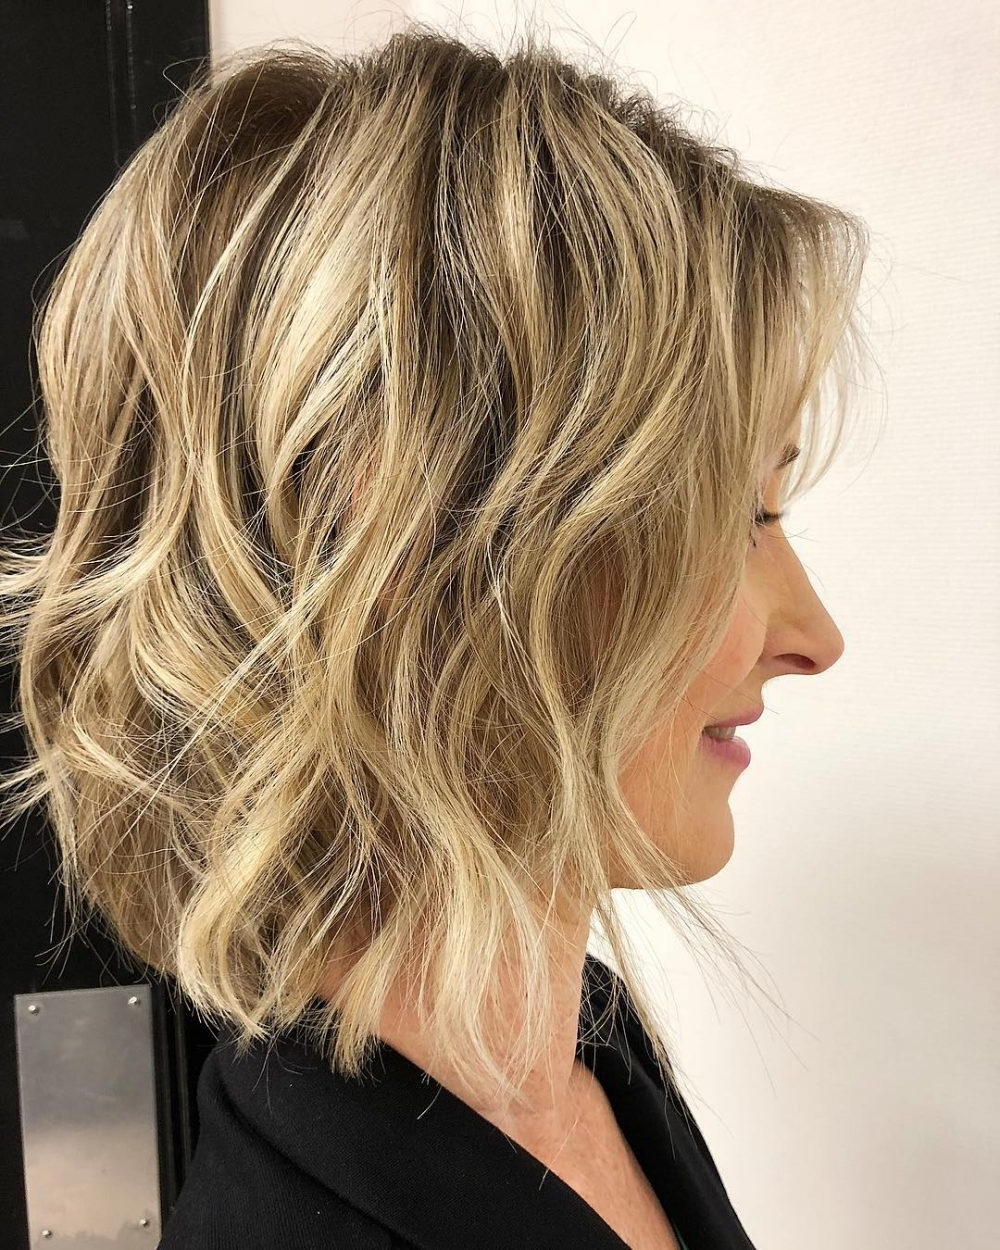 43 Perfect Short Hairstyles For Fine Hair In 2018 Regarding Southern Belle Bob Haircuts With Gradual Layers (View 9 of 20)